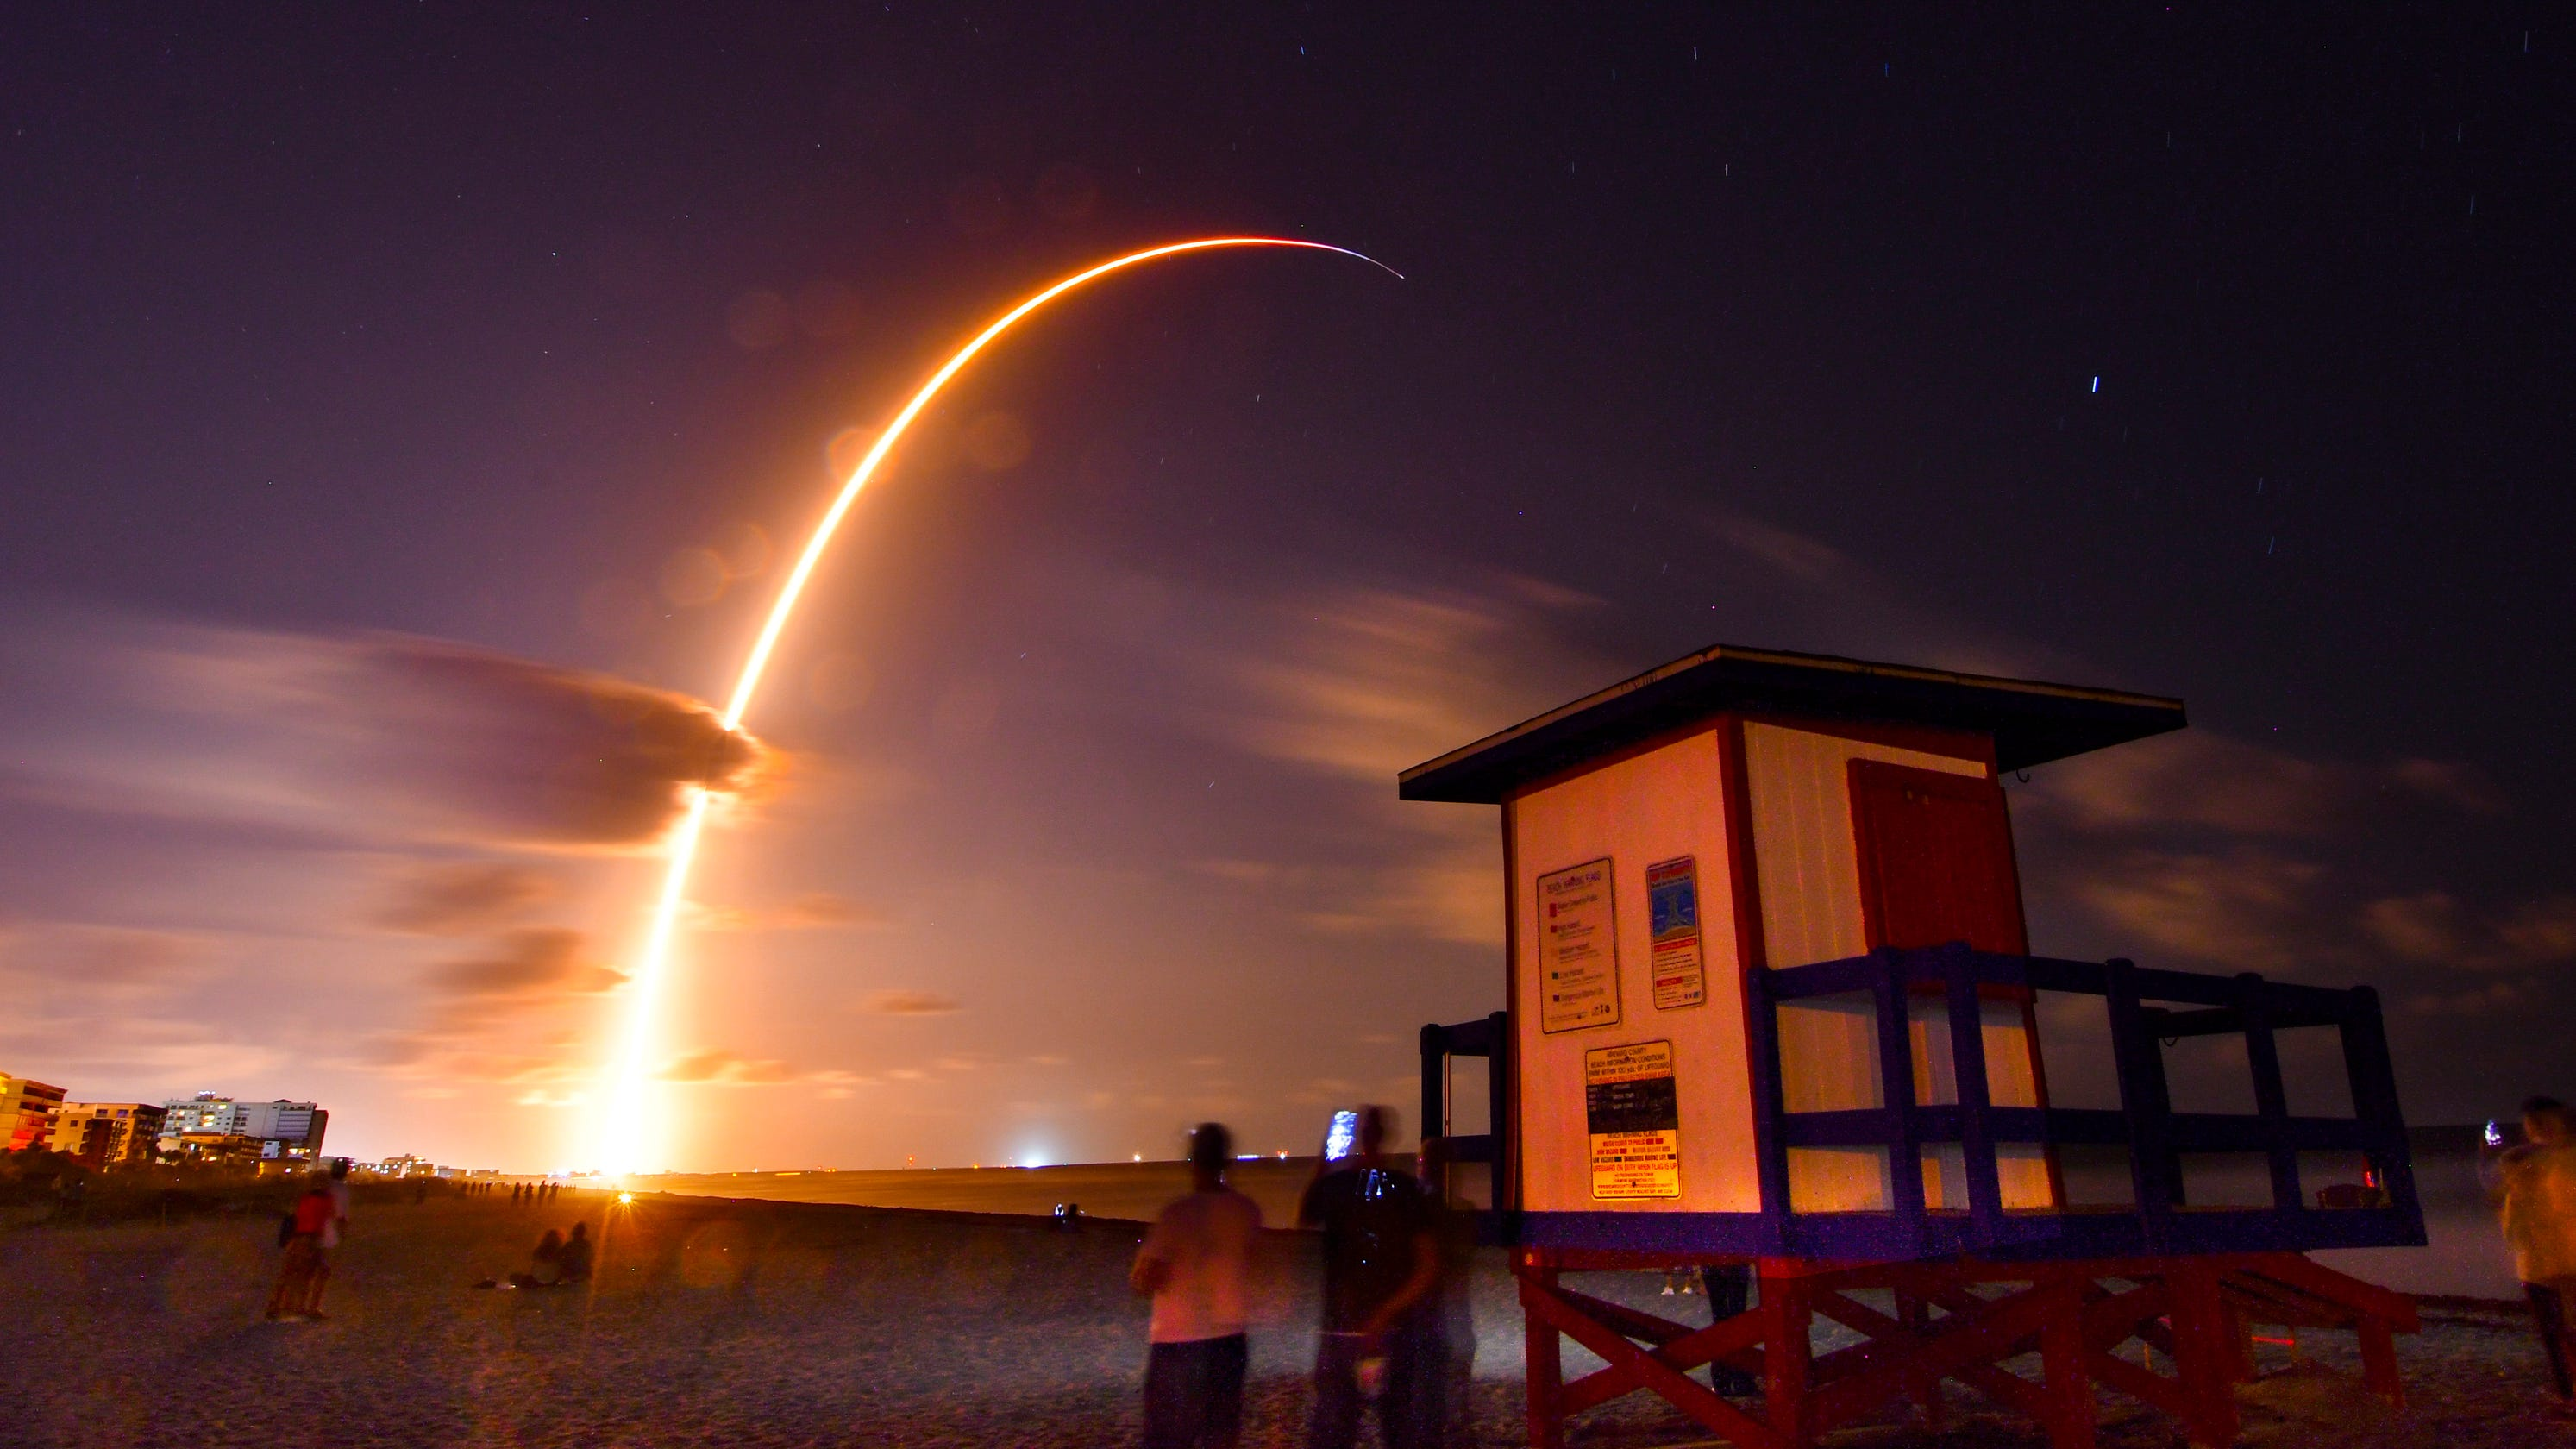 It's launch day! Things to know about SpaceX Falcon 9 launch